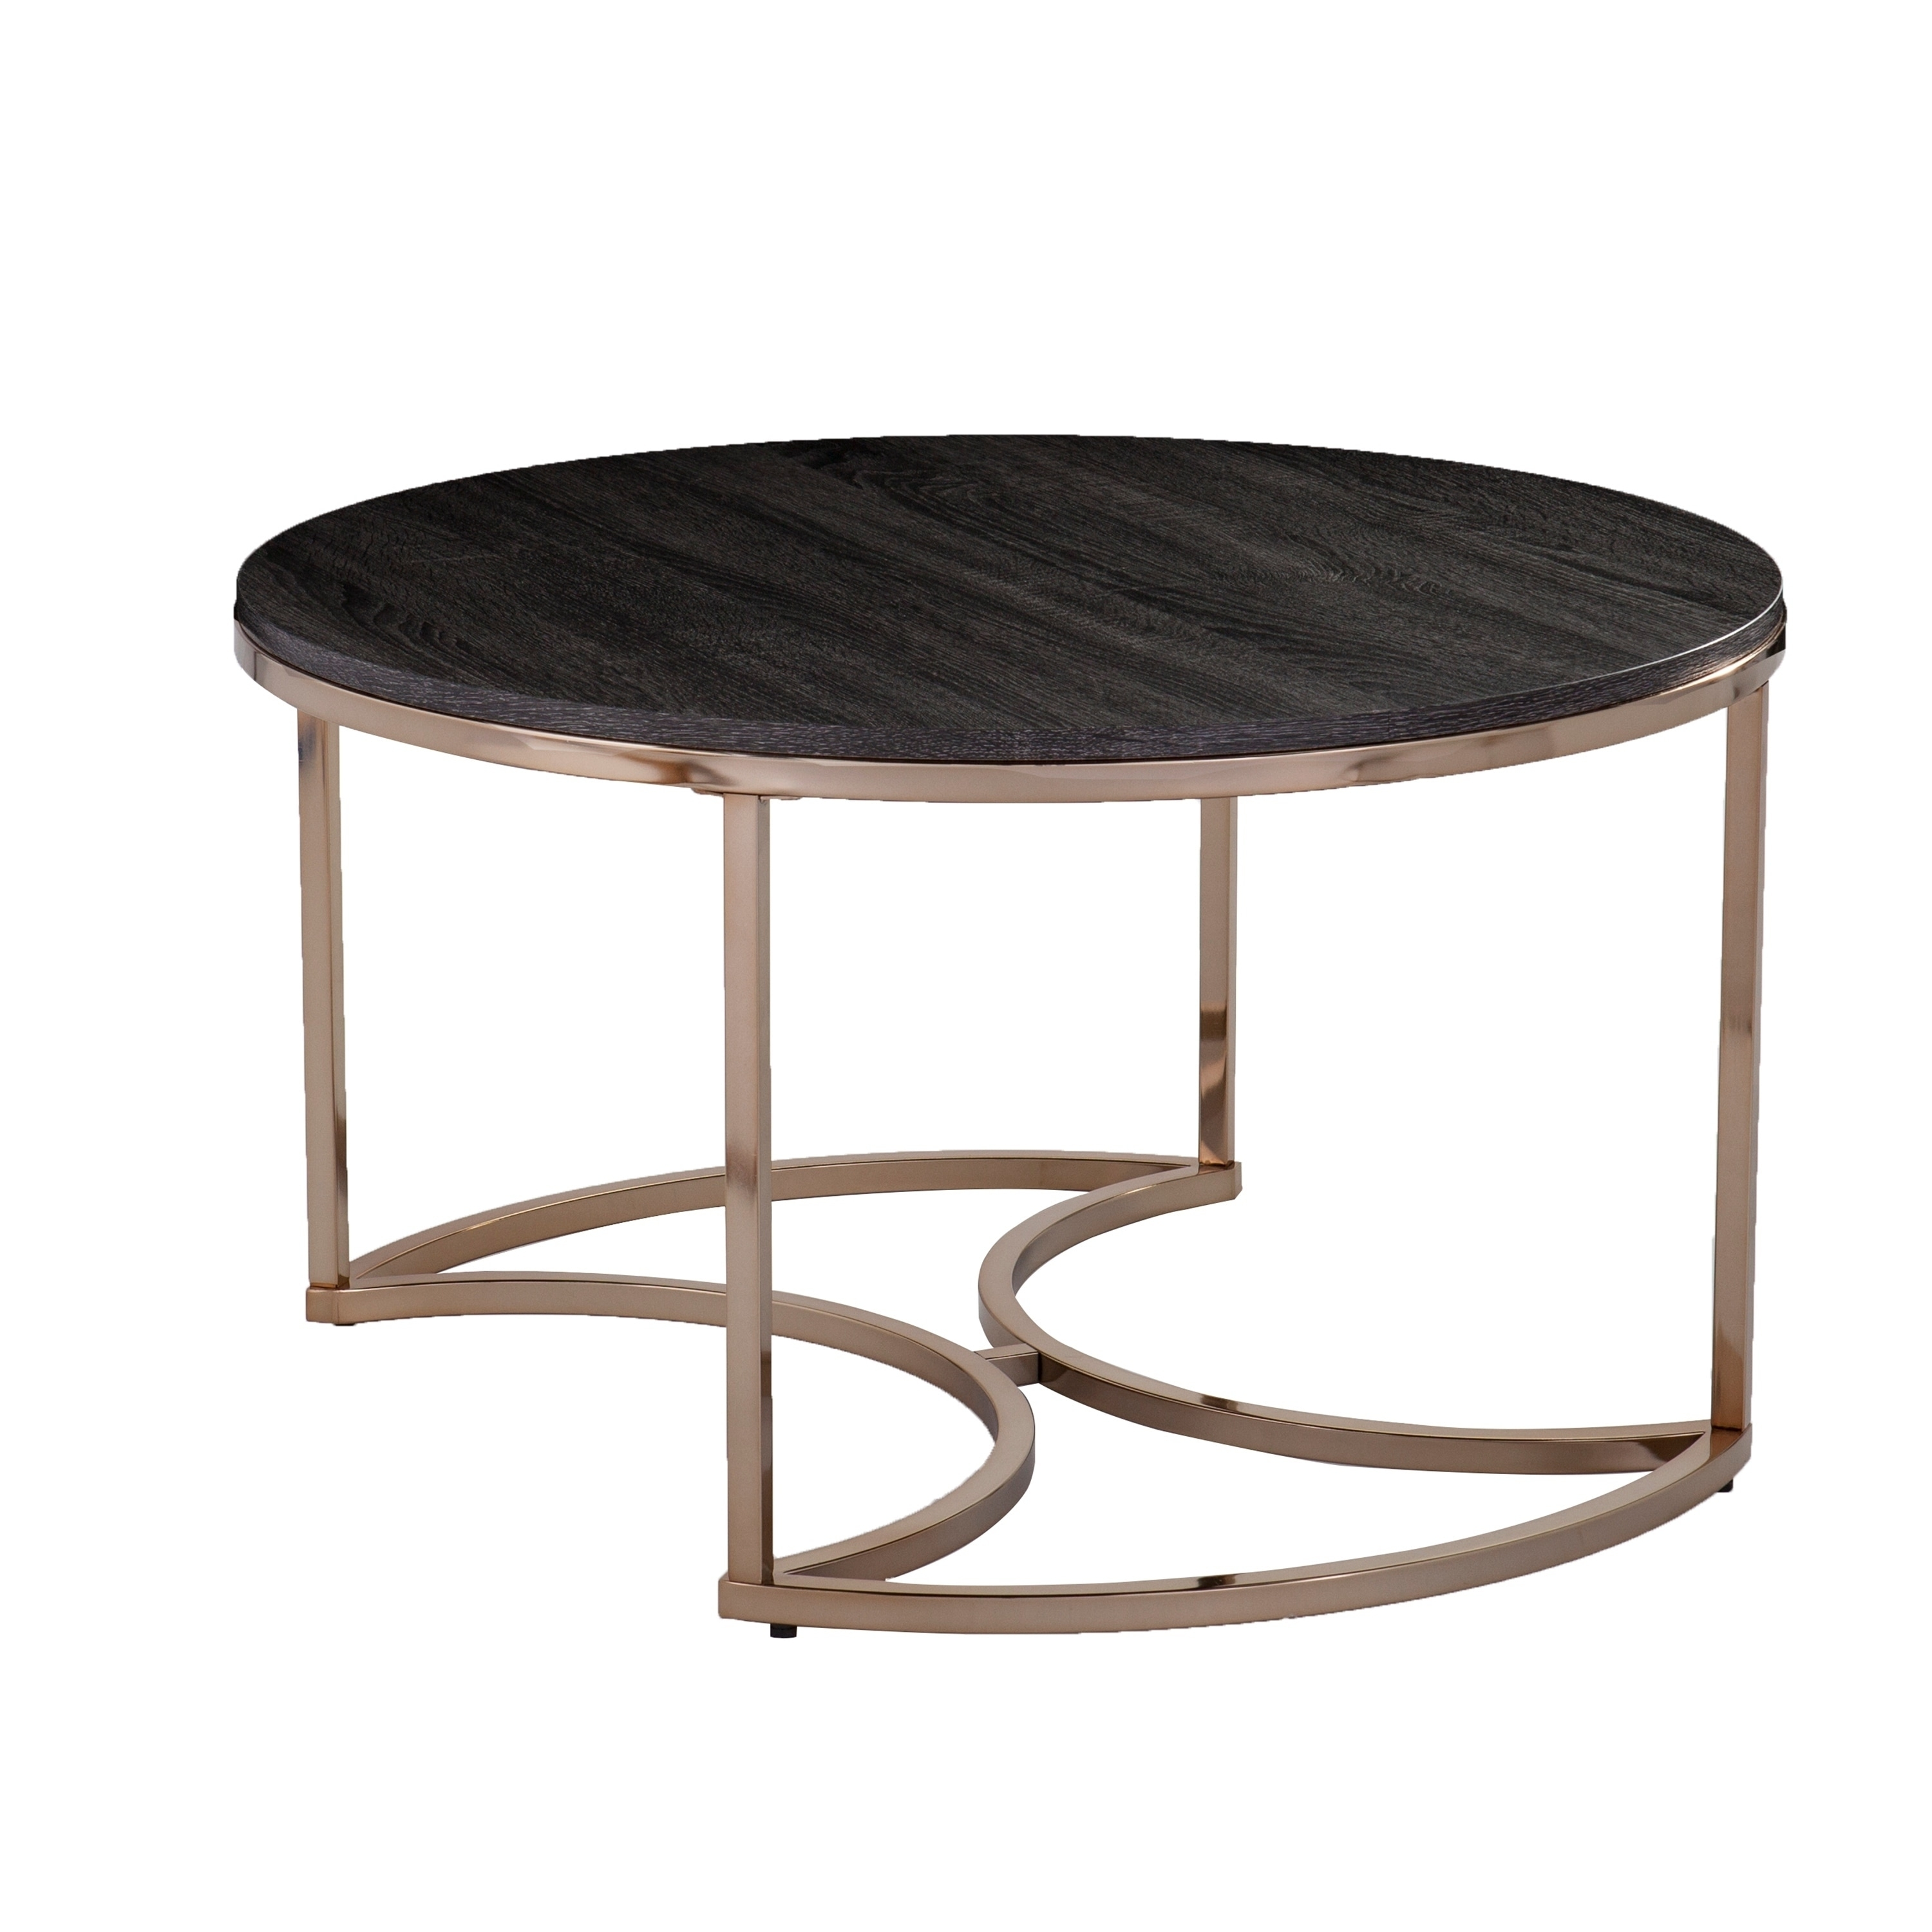 Shop Harper Blvd Belle Round Nesting Coffee Tables - 3Pc Set - Free pertaining to Set of Nesting Coffee Tables (Image 26 of 30)